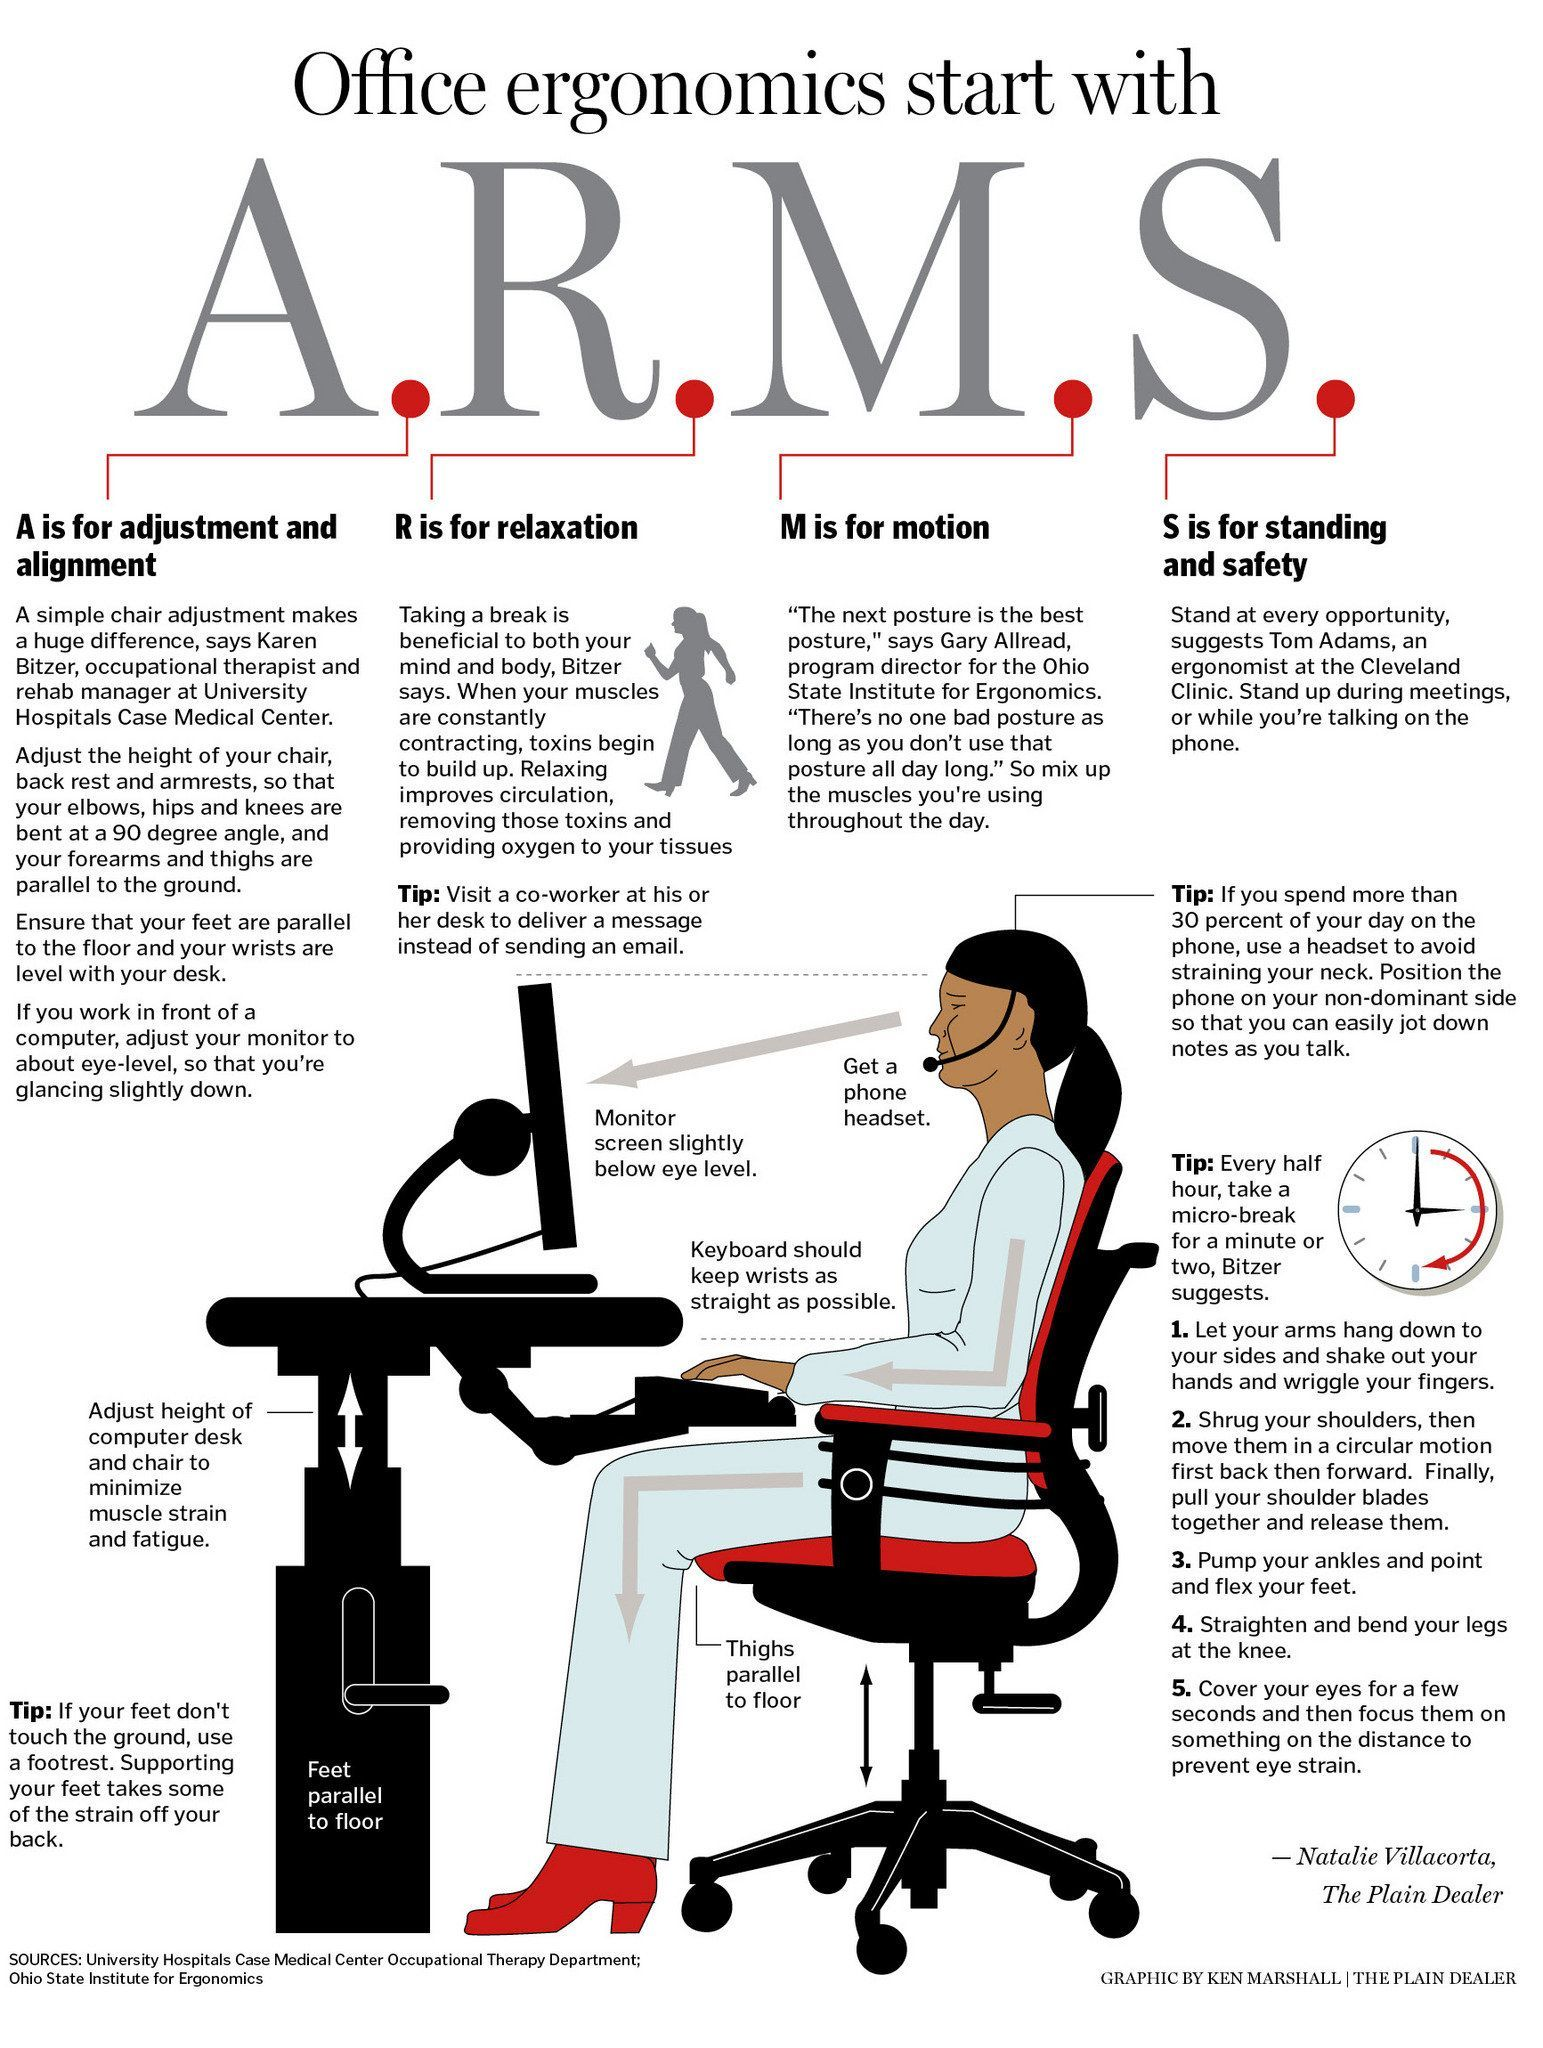 ergonomic chair keyboard position bar height table and chairs canada how to set up a computer work station for correct office ergonomics ken marshall the plain dealer reporter natalie villacorta outlines workers can help prevent fatigue injuries by properly